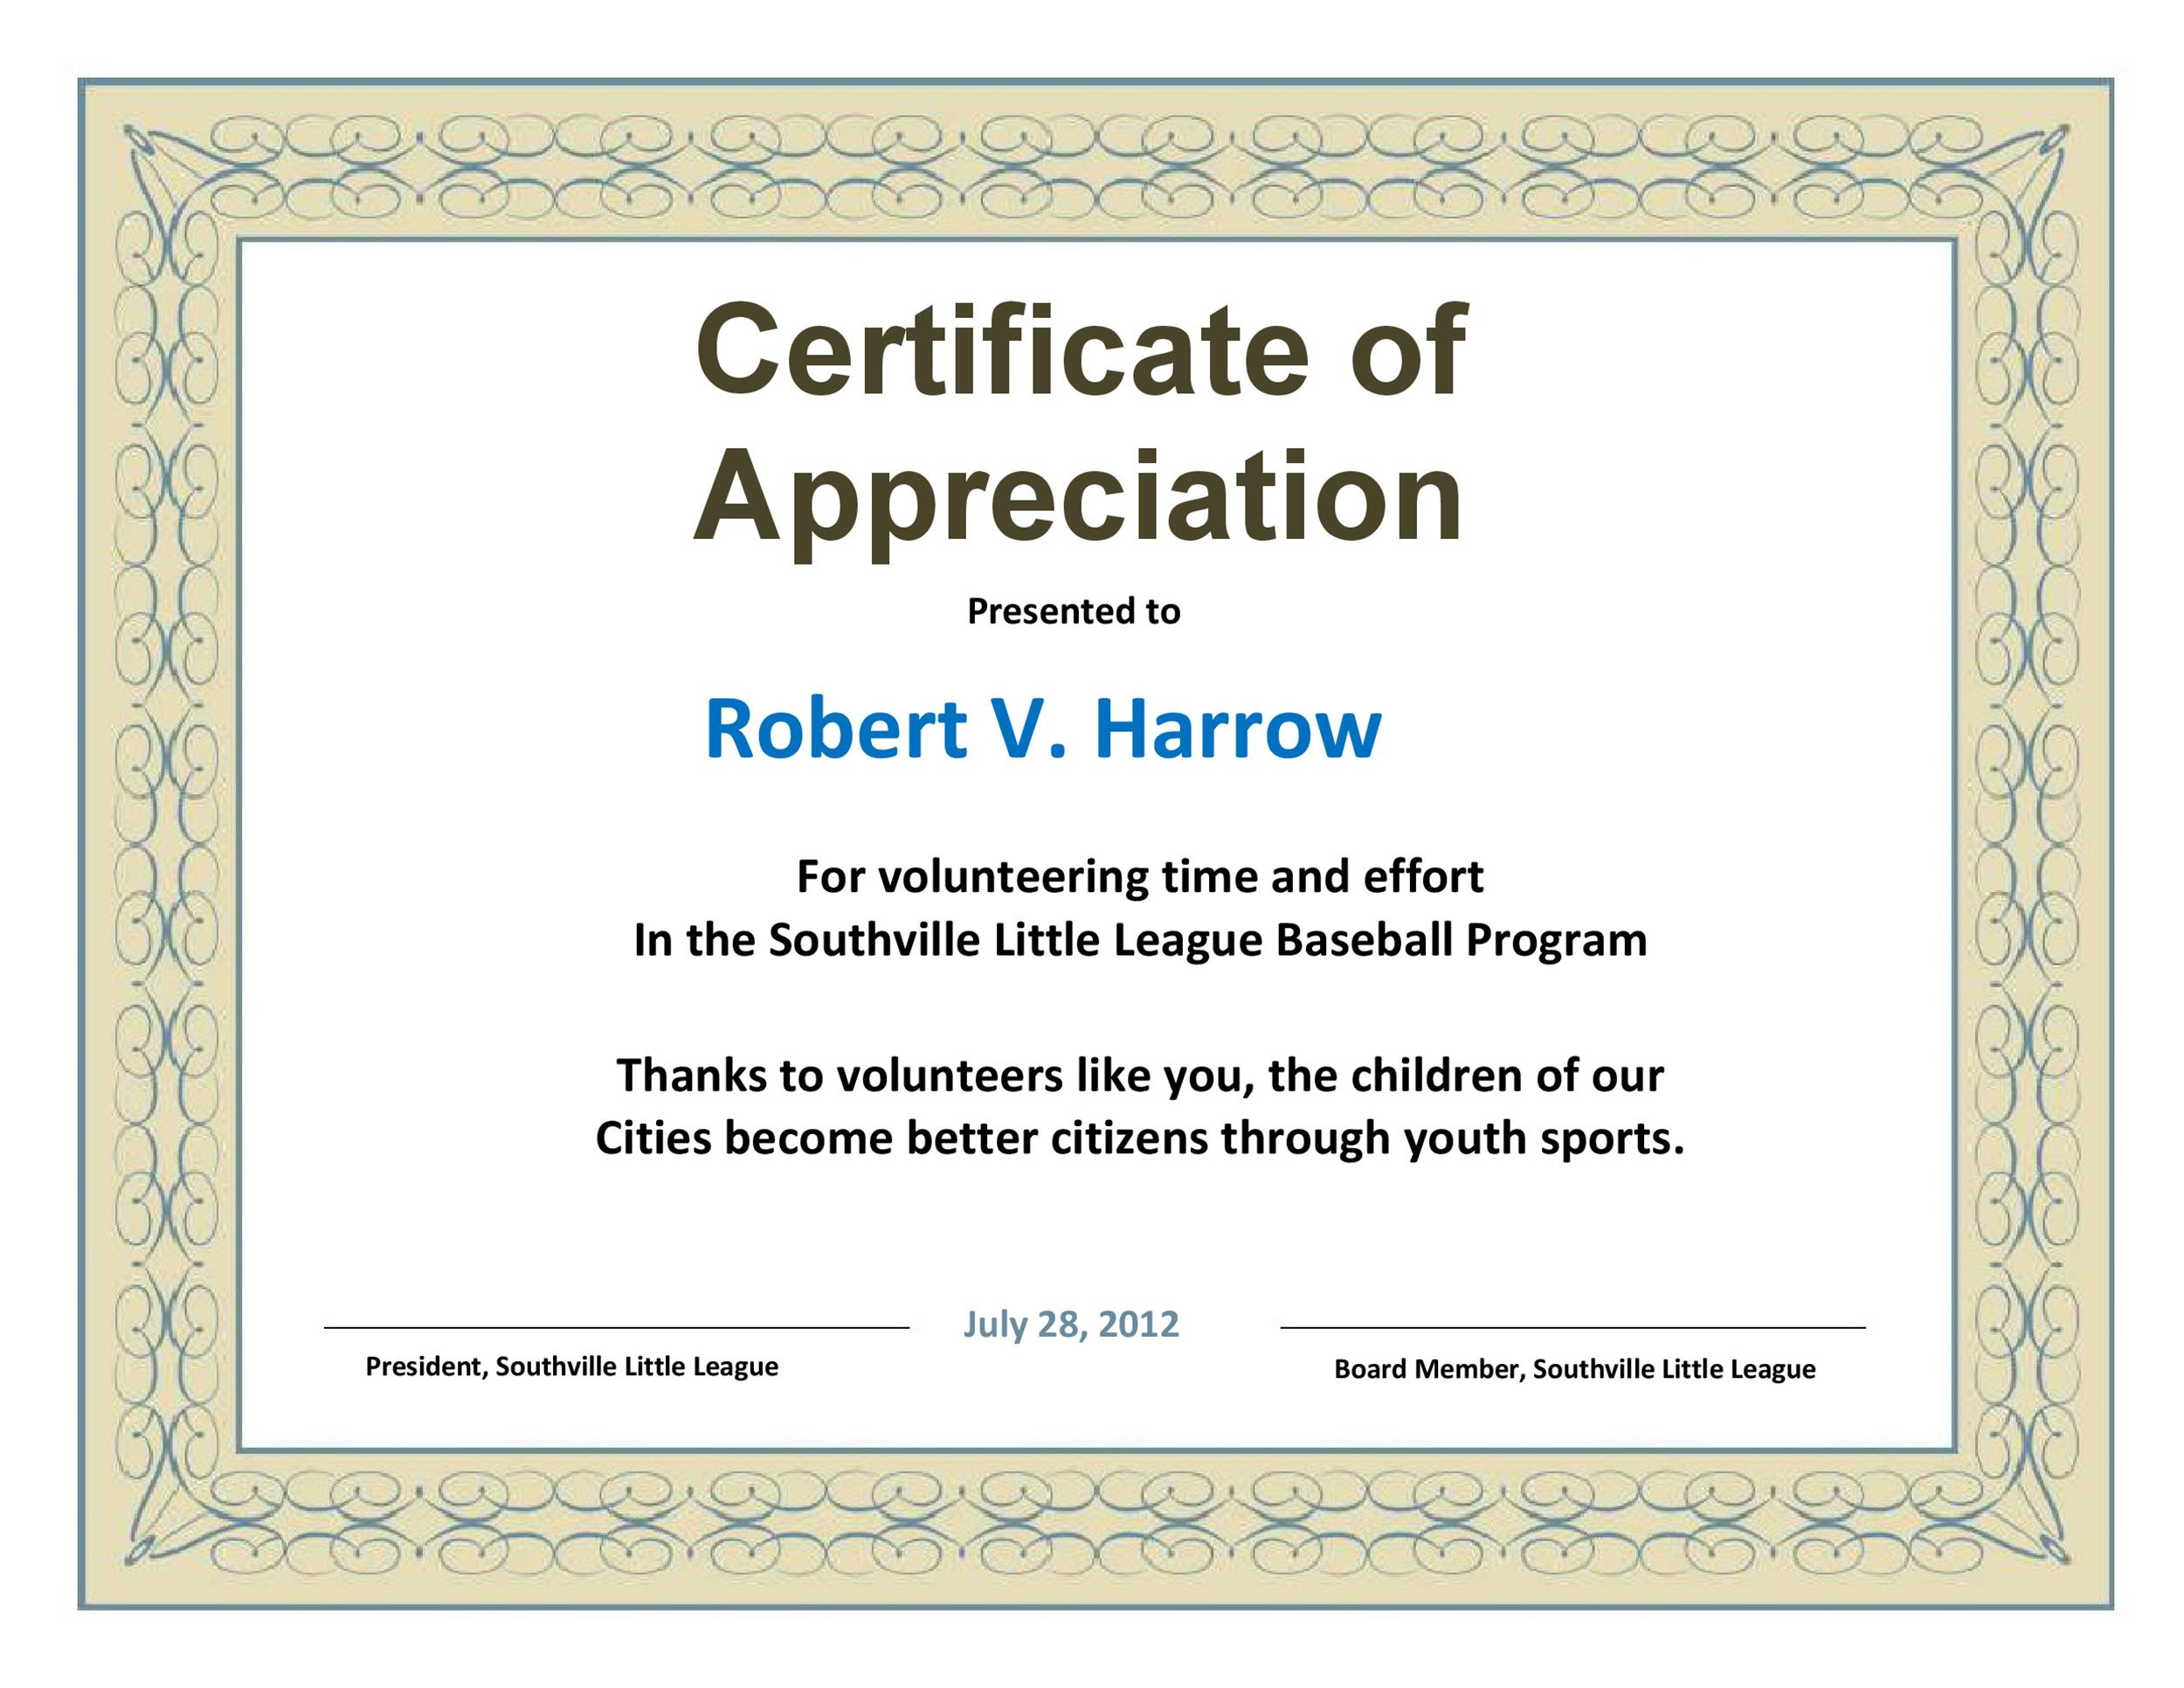 30 Free Certificate of Appreciation Templates and Letters - certificate of appreciation